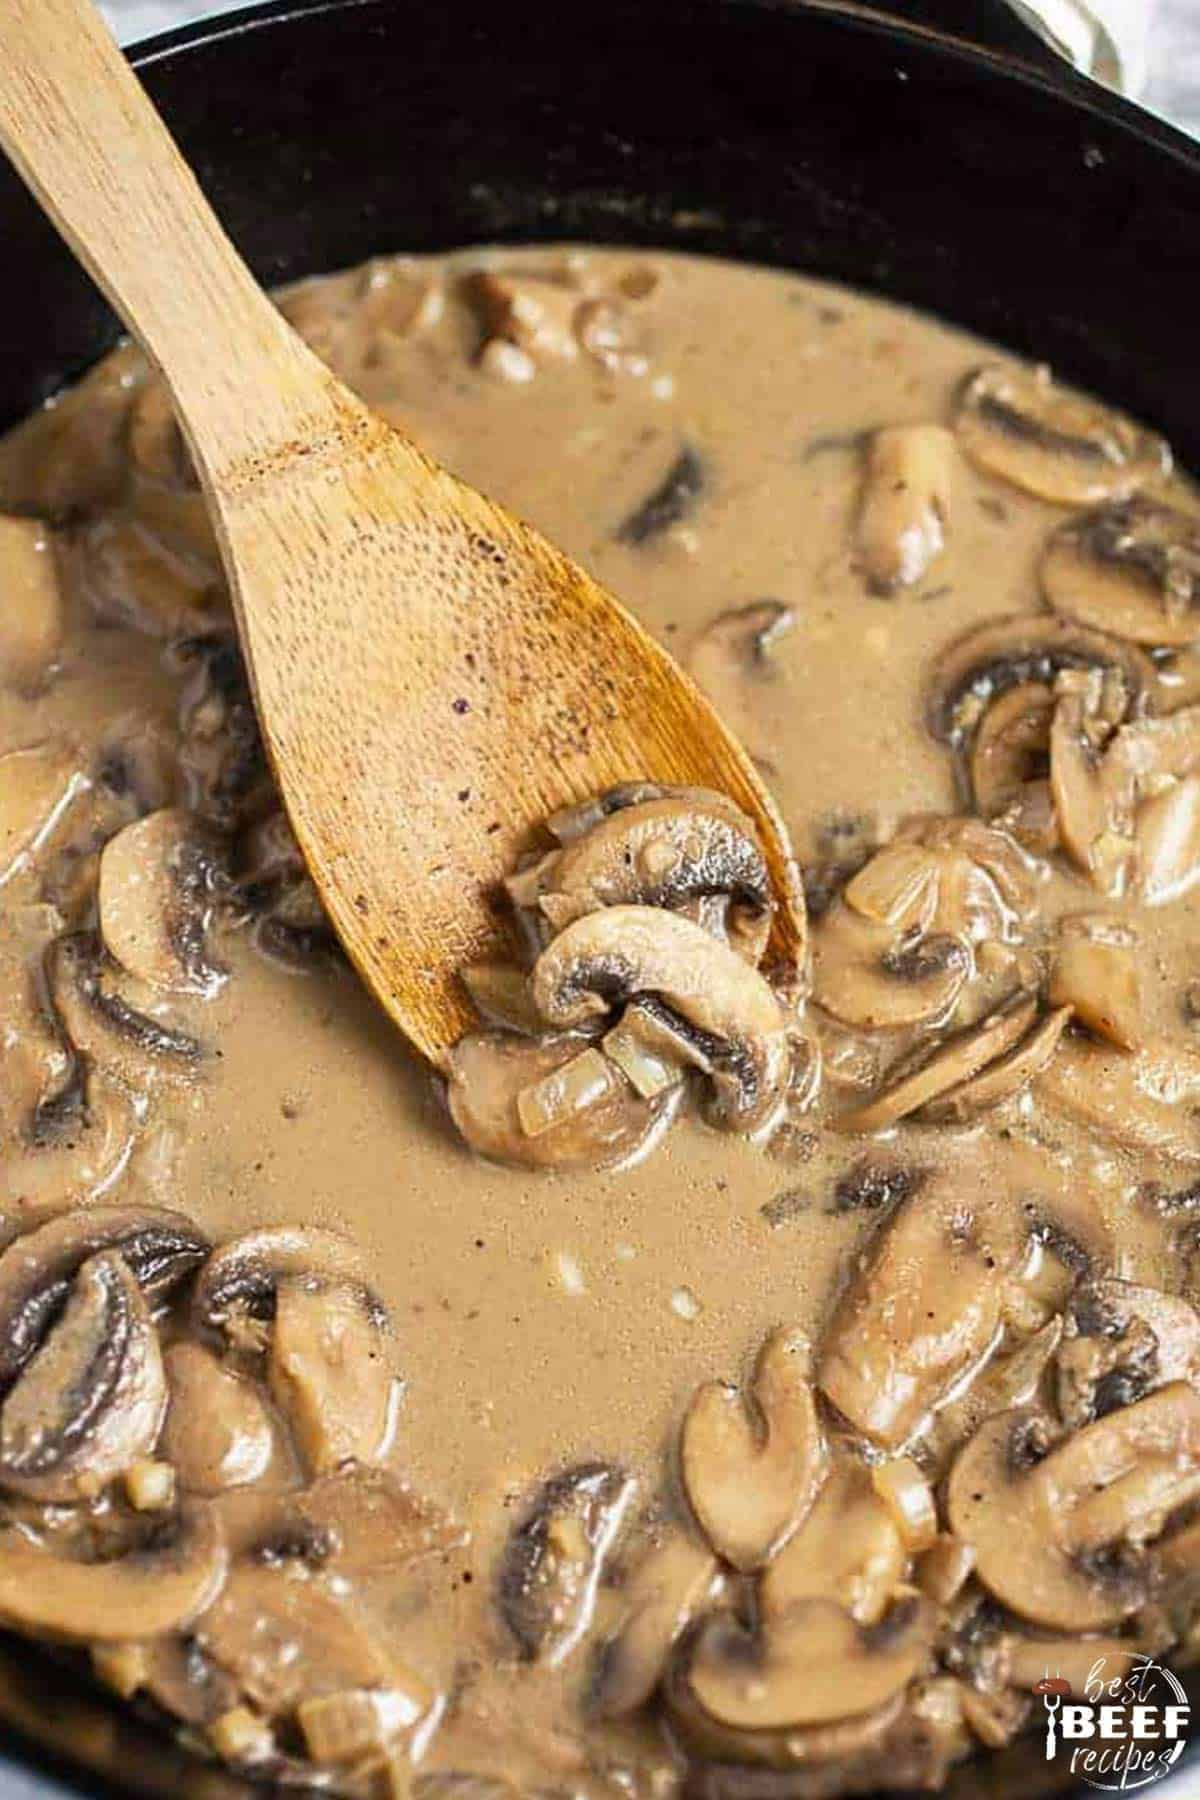 Mushroom steak sauce in a skillet